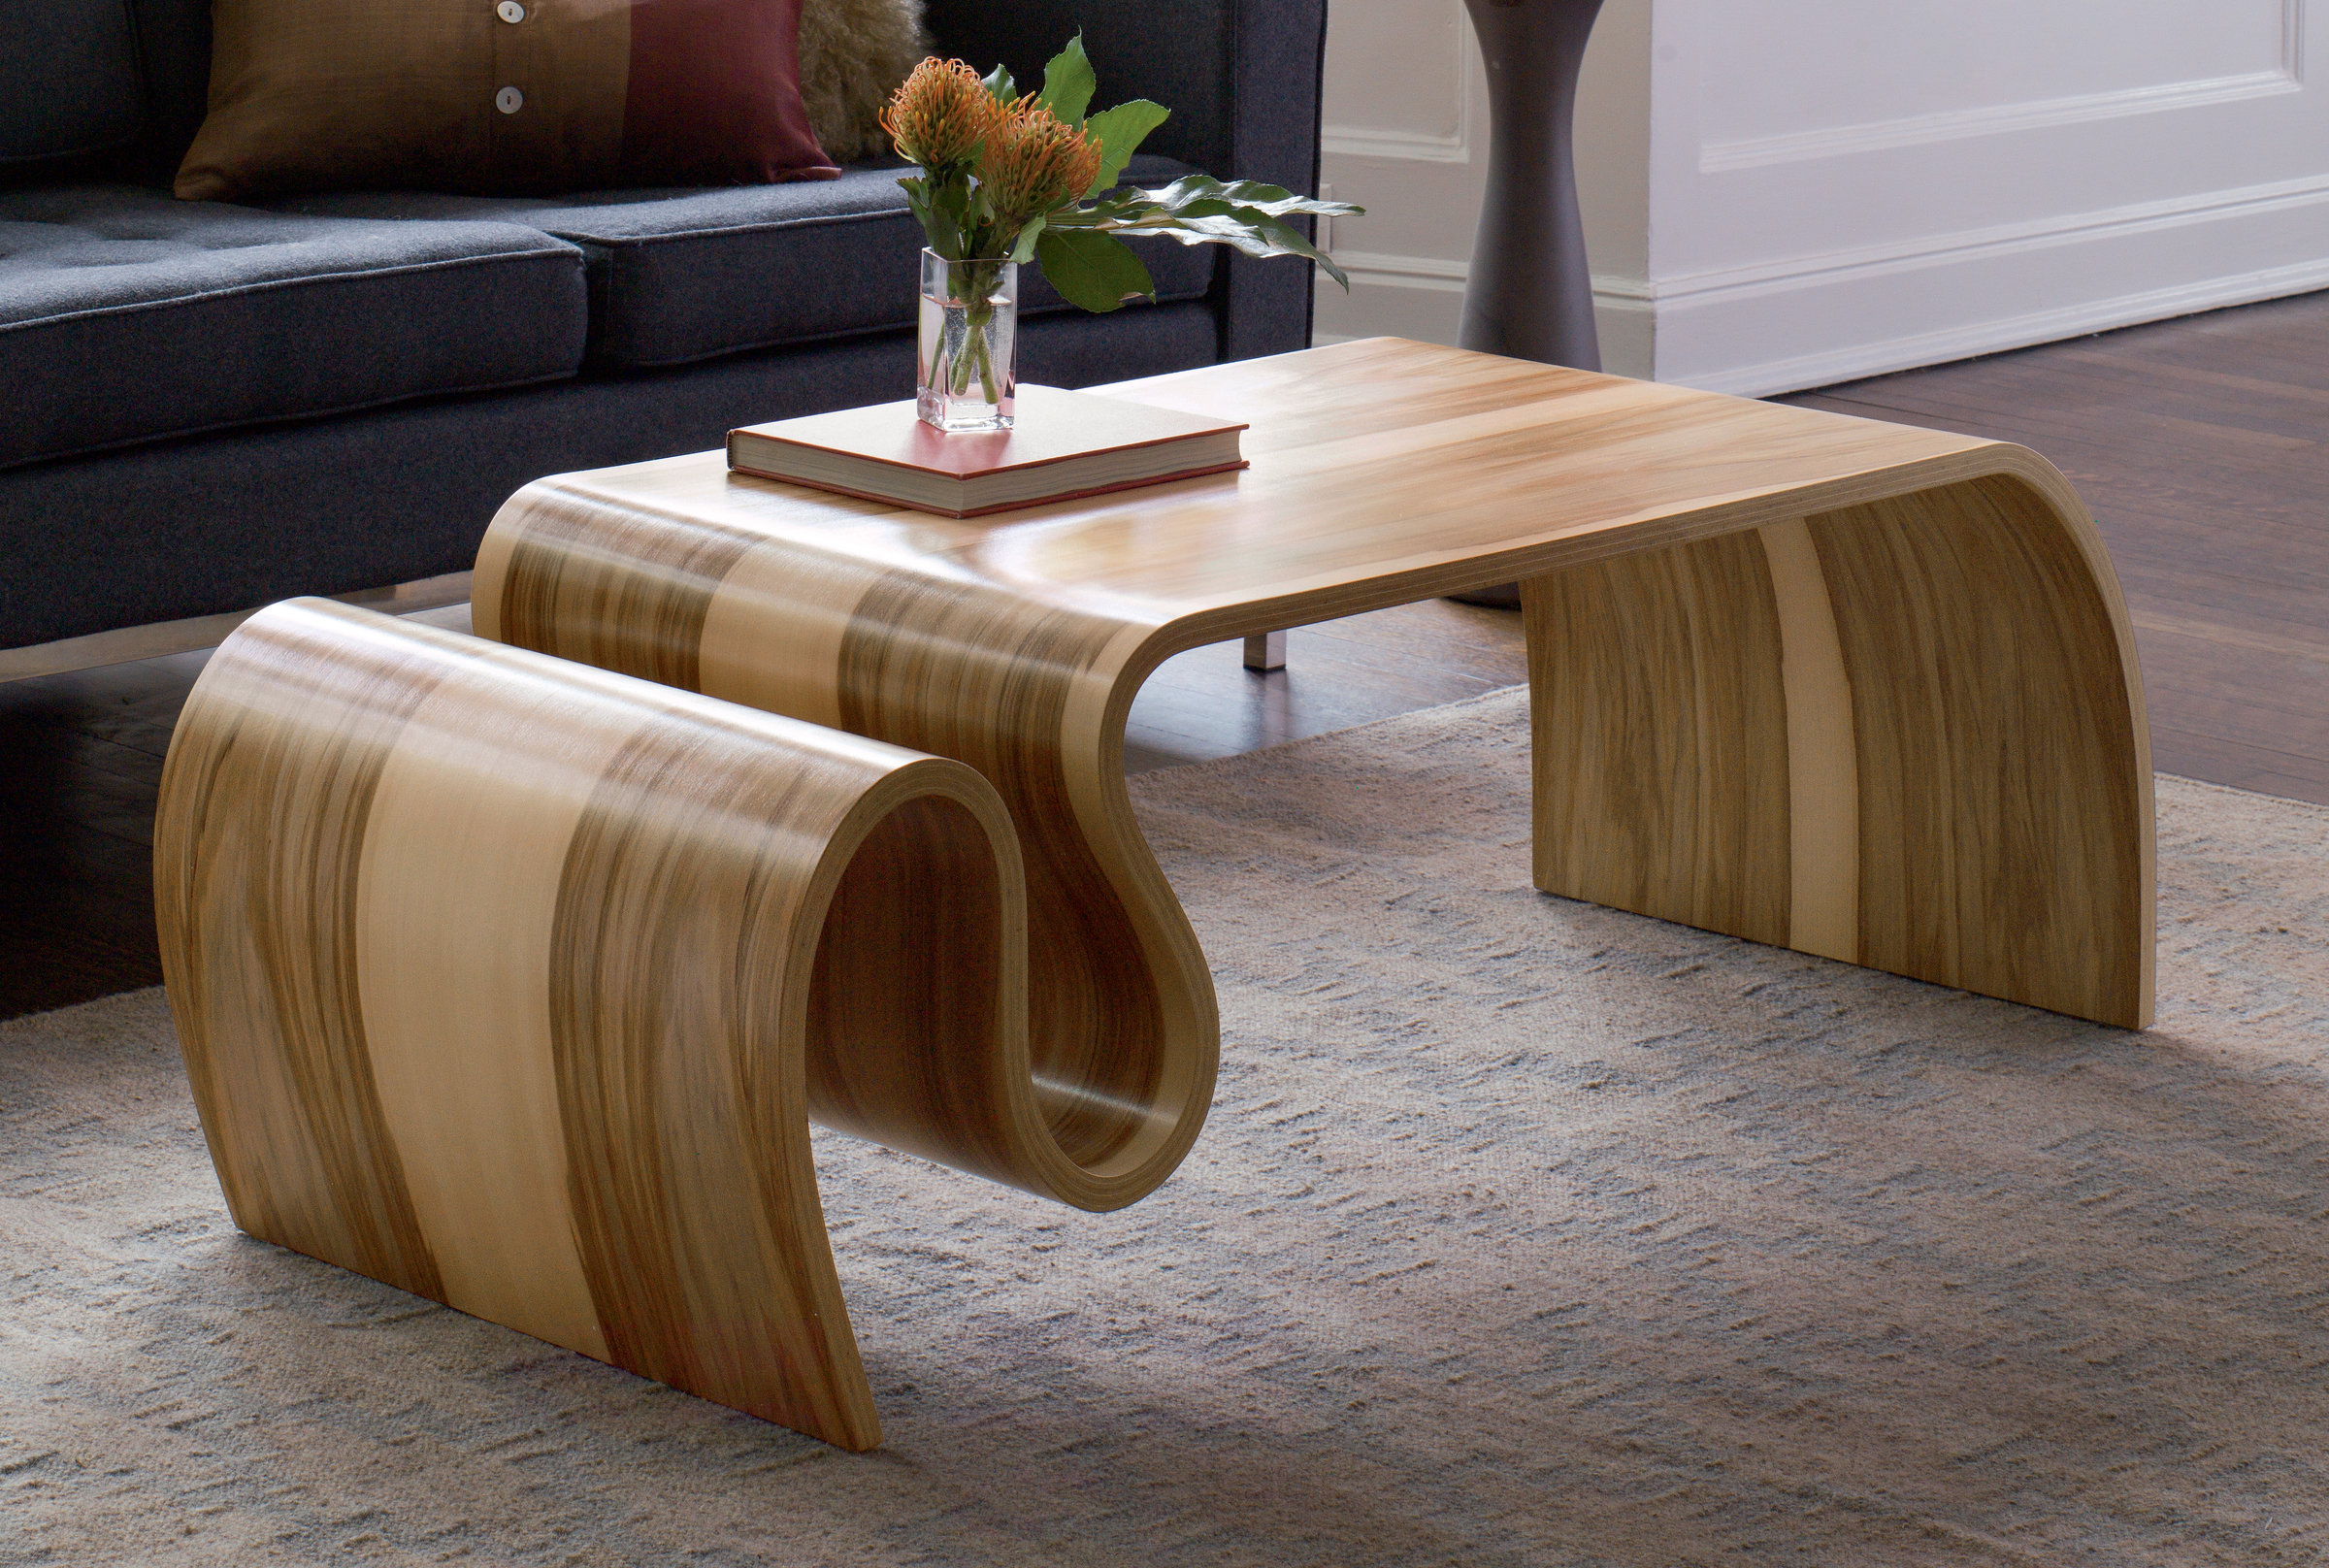 Crazy Carpet Table By Kino Guerin Wood Coffee Table Artful Home In 2021 Luxury Furniture Coffee Table Luxury Furniture Design [ 1616 x 2400 Pixel ]